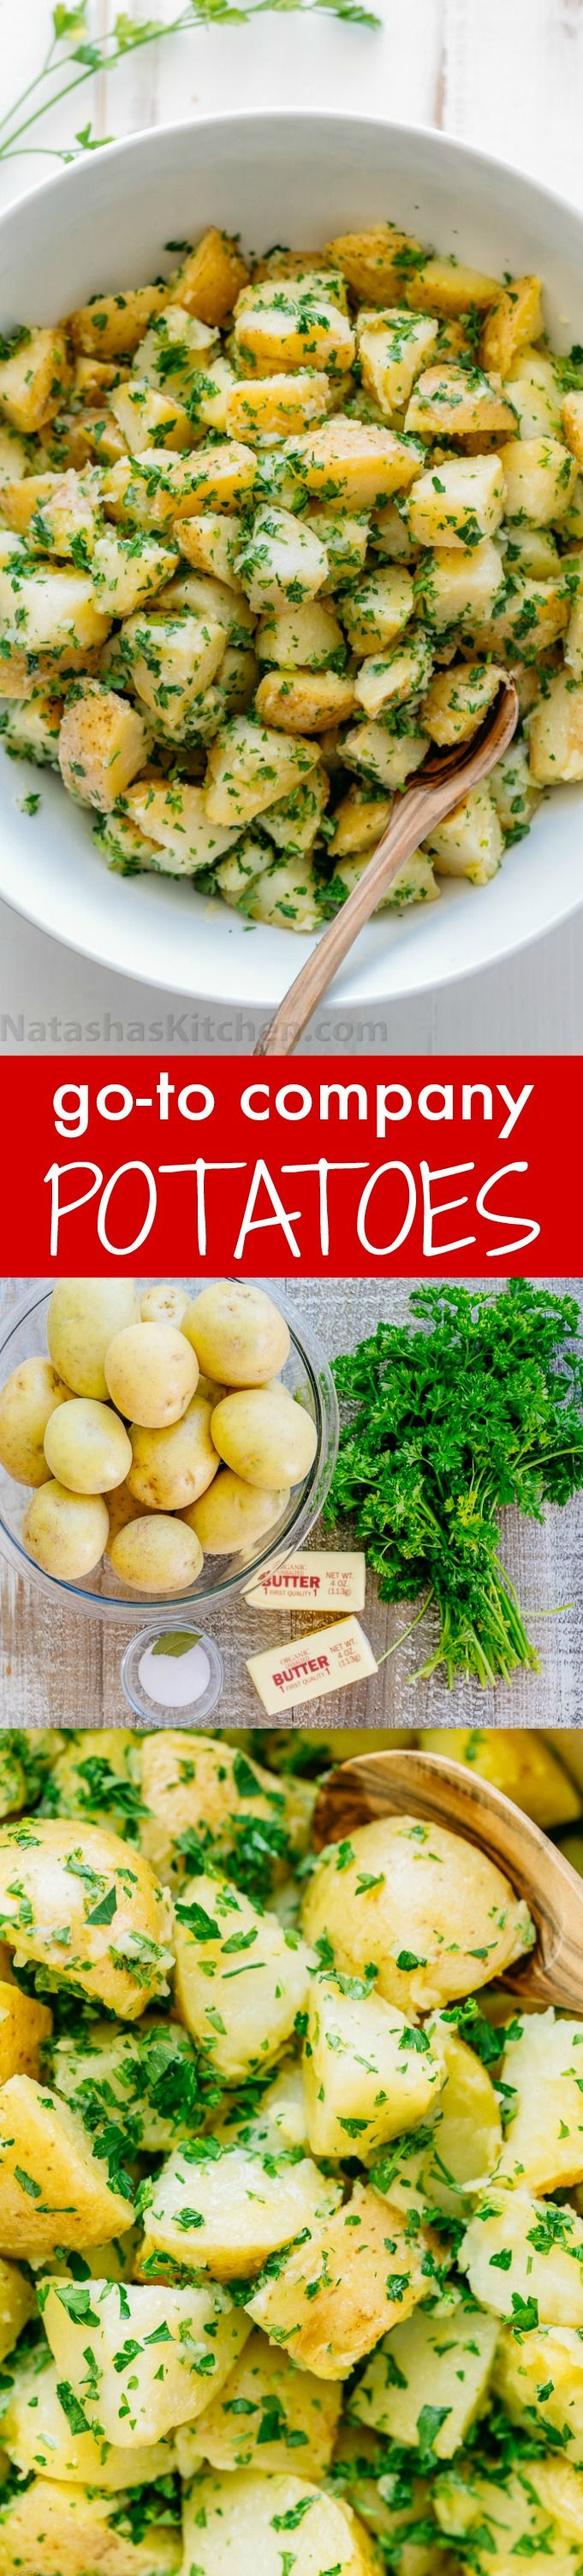 The BEST potatoes recipe is the simplest. Company potatoes always get compliments! The parsley and butter really bring out the flavor of yukon potatoes | http://natashaskitchen.com